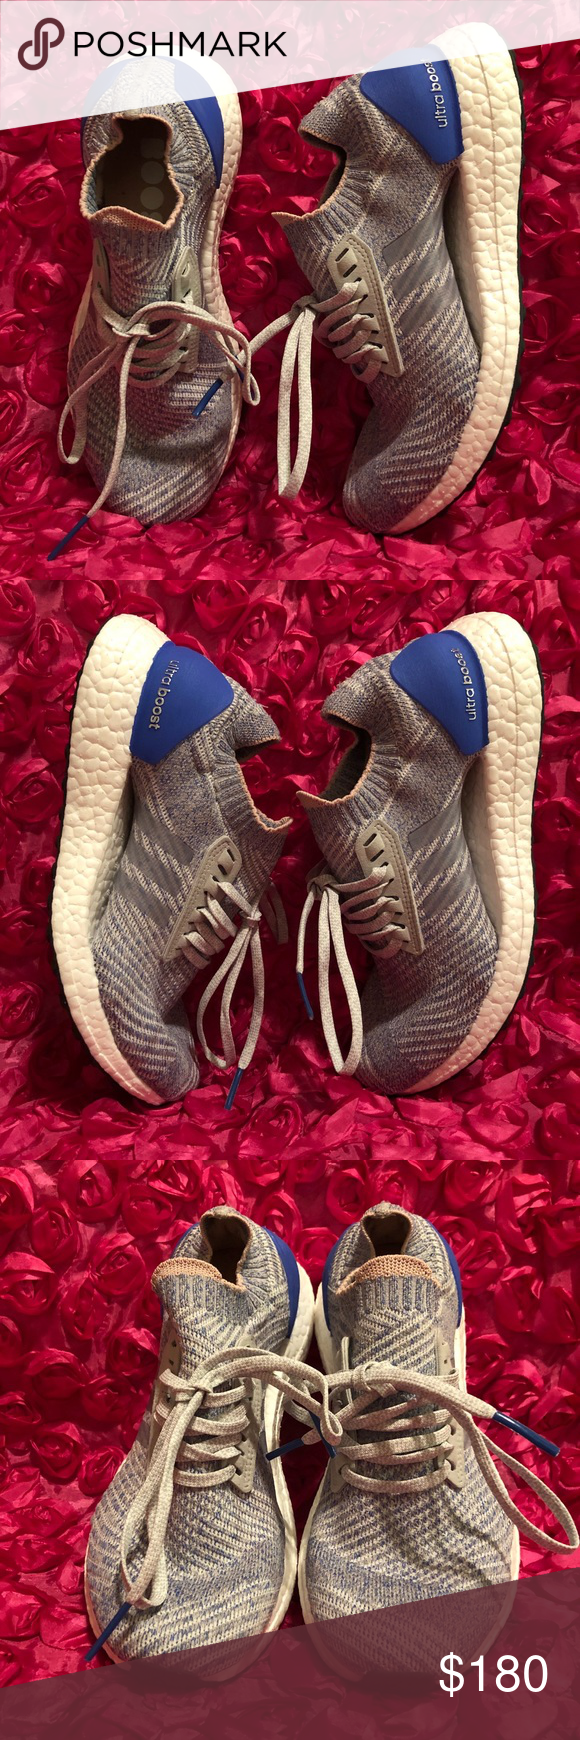 59ce7c5630a WOMEN RUNNING ULTRABOOST X SHOES Brand new never worn No box 📦 Color  GREY  TWO